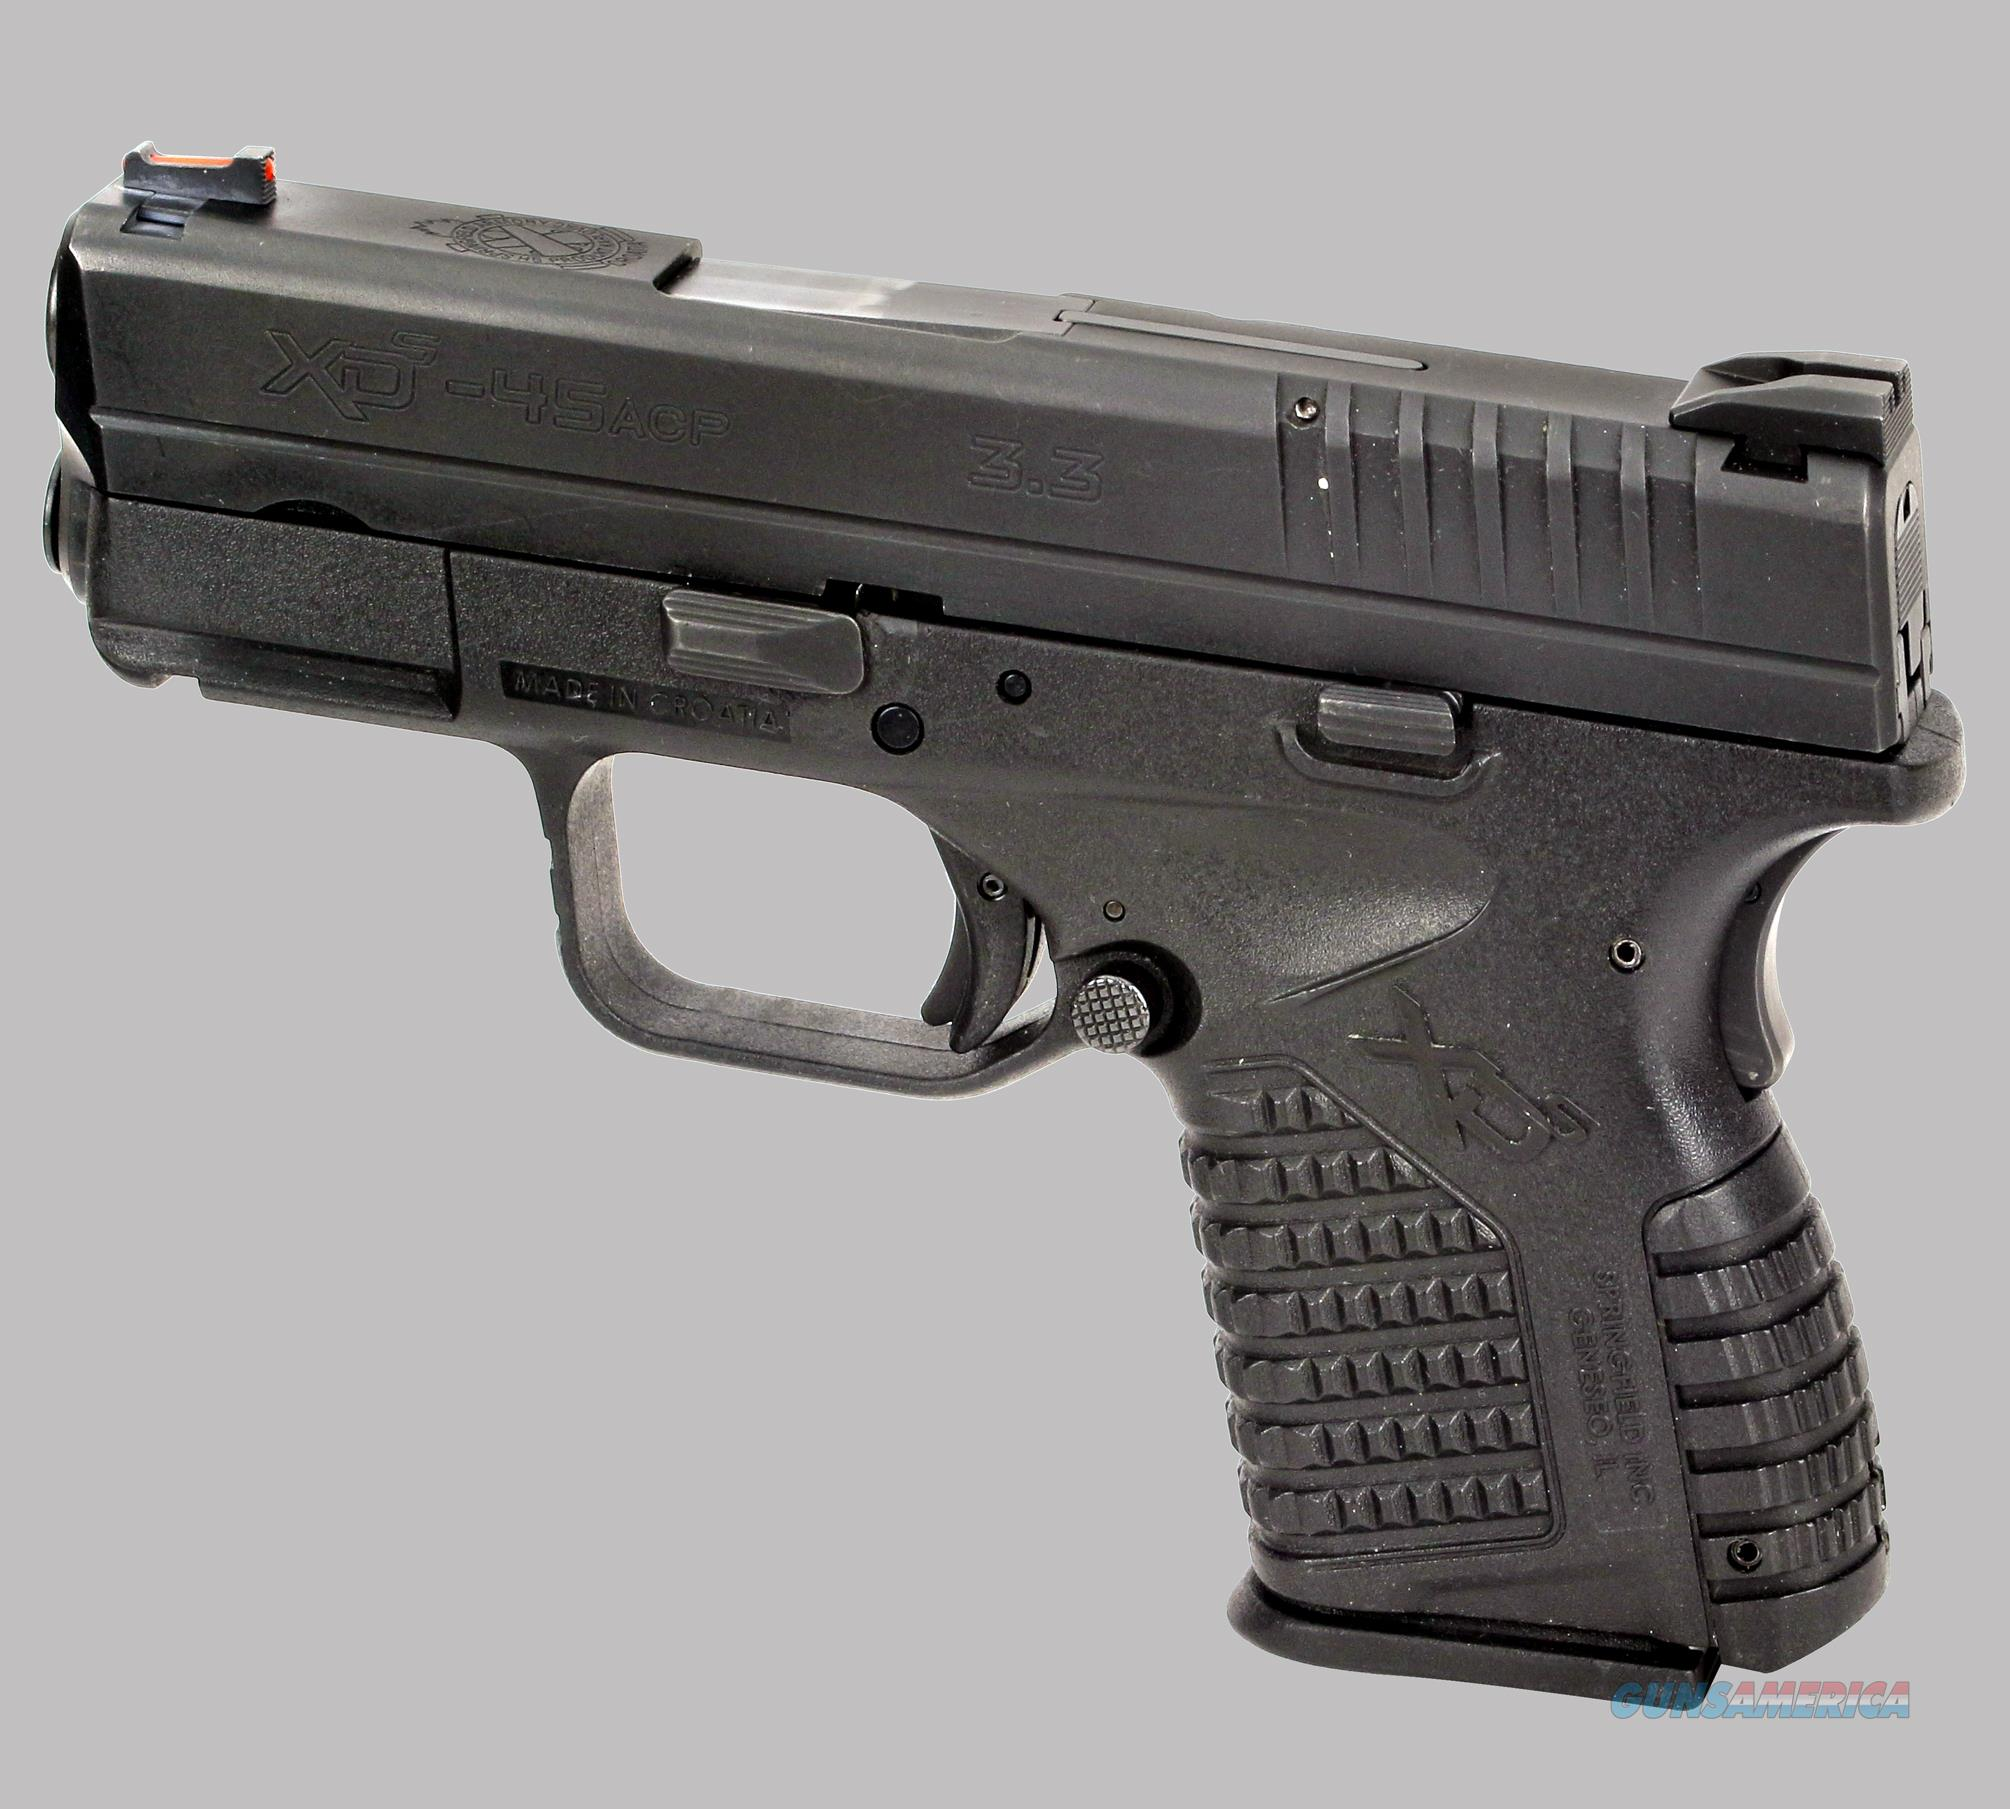 Springfield Armory XD-S Pistol for sale